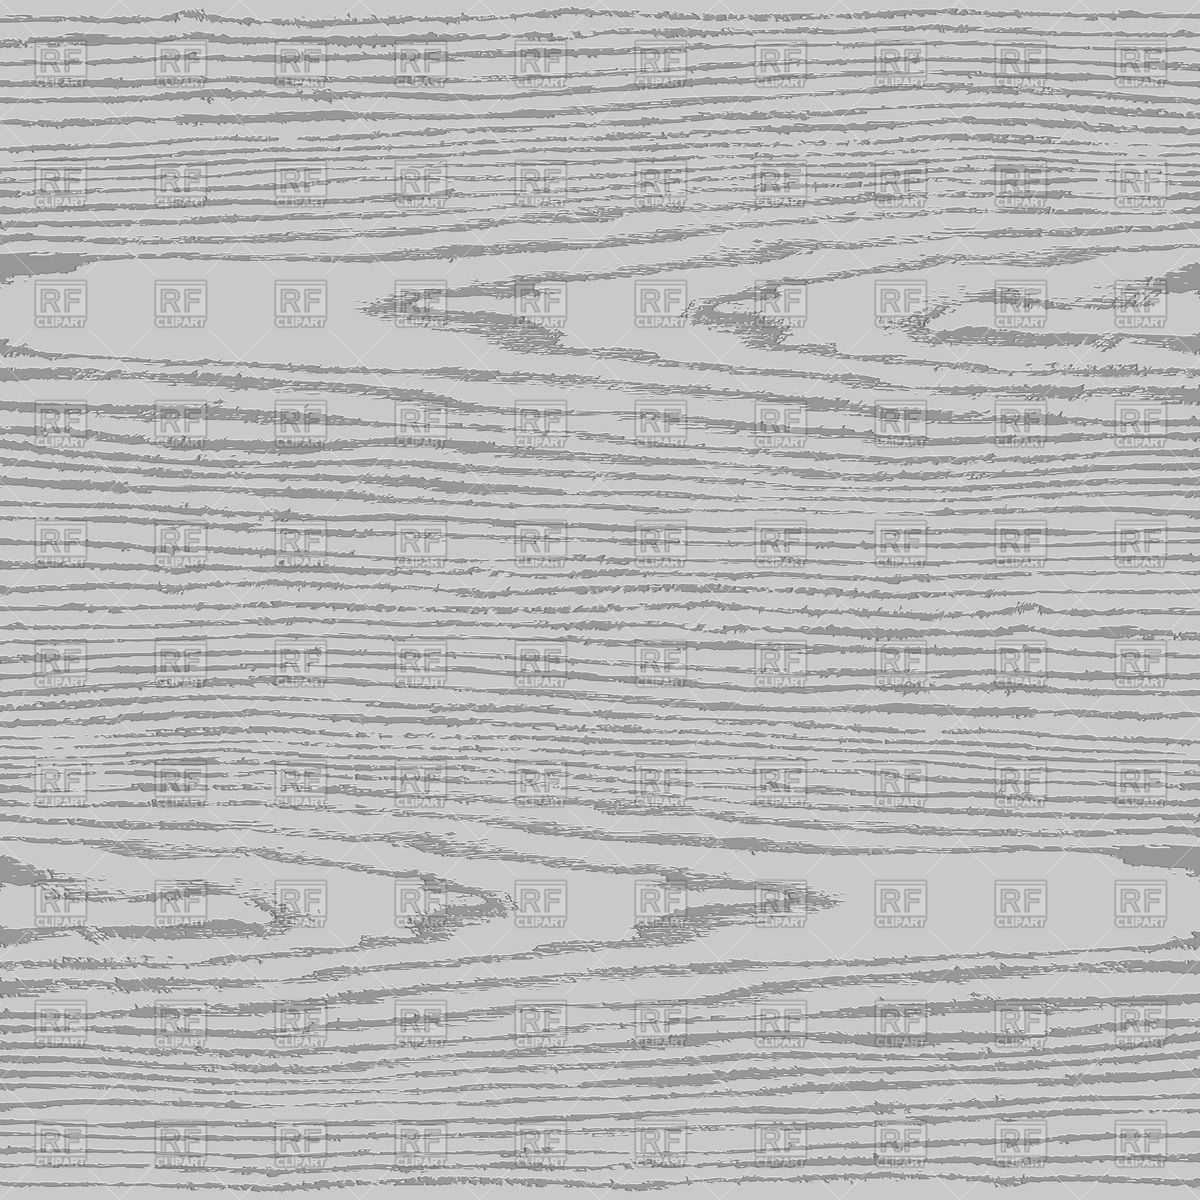 Wood Grain Pattern Vector At Getdrawingscom Free For Personal Use